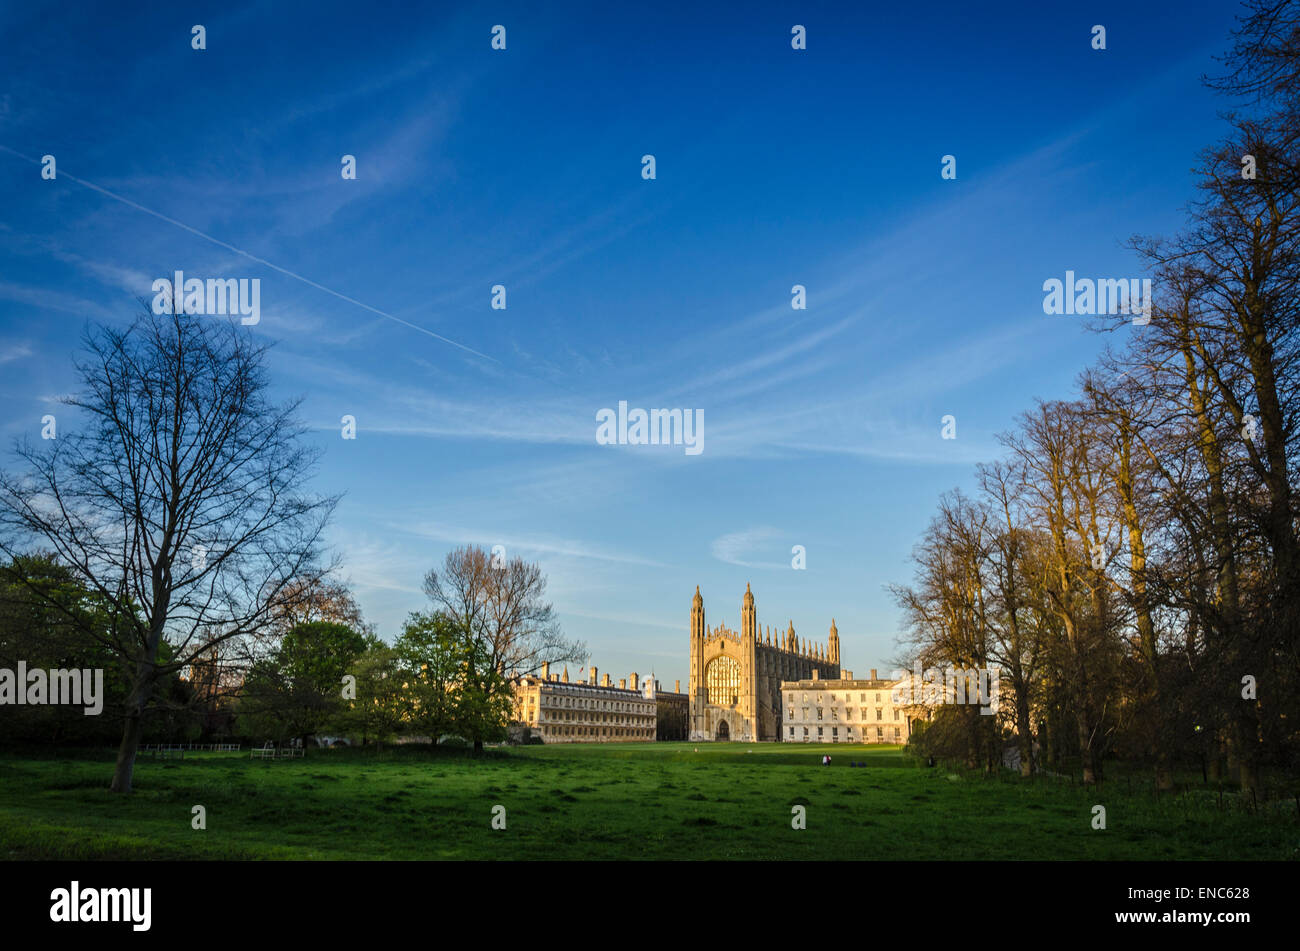 King's College viewed from the backs, Cambridge - Stock Image